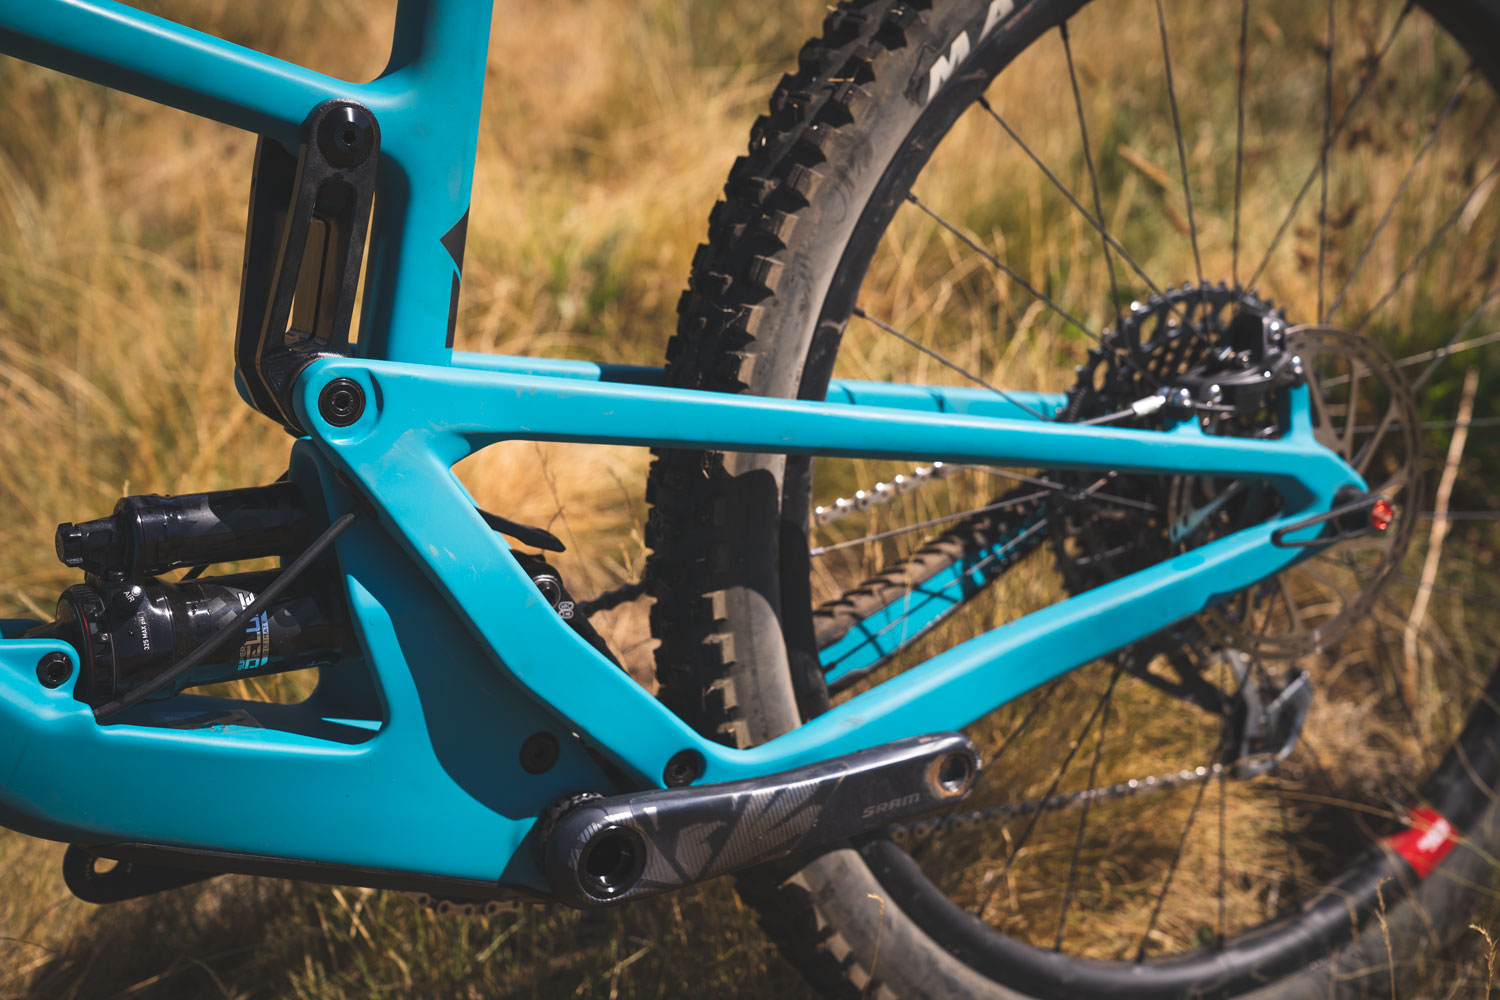 Santa Cruz 5010 CC XO1 Mountain Bike Review